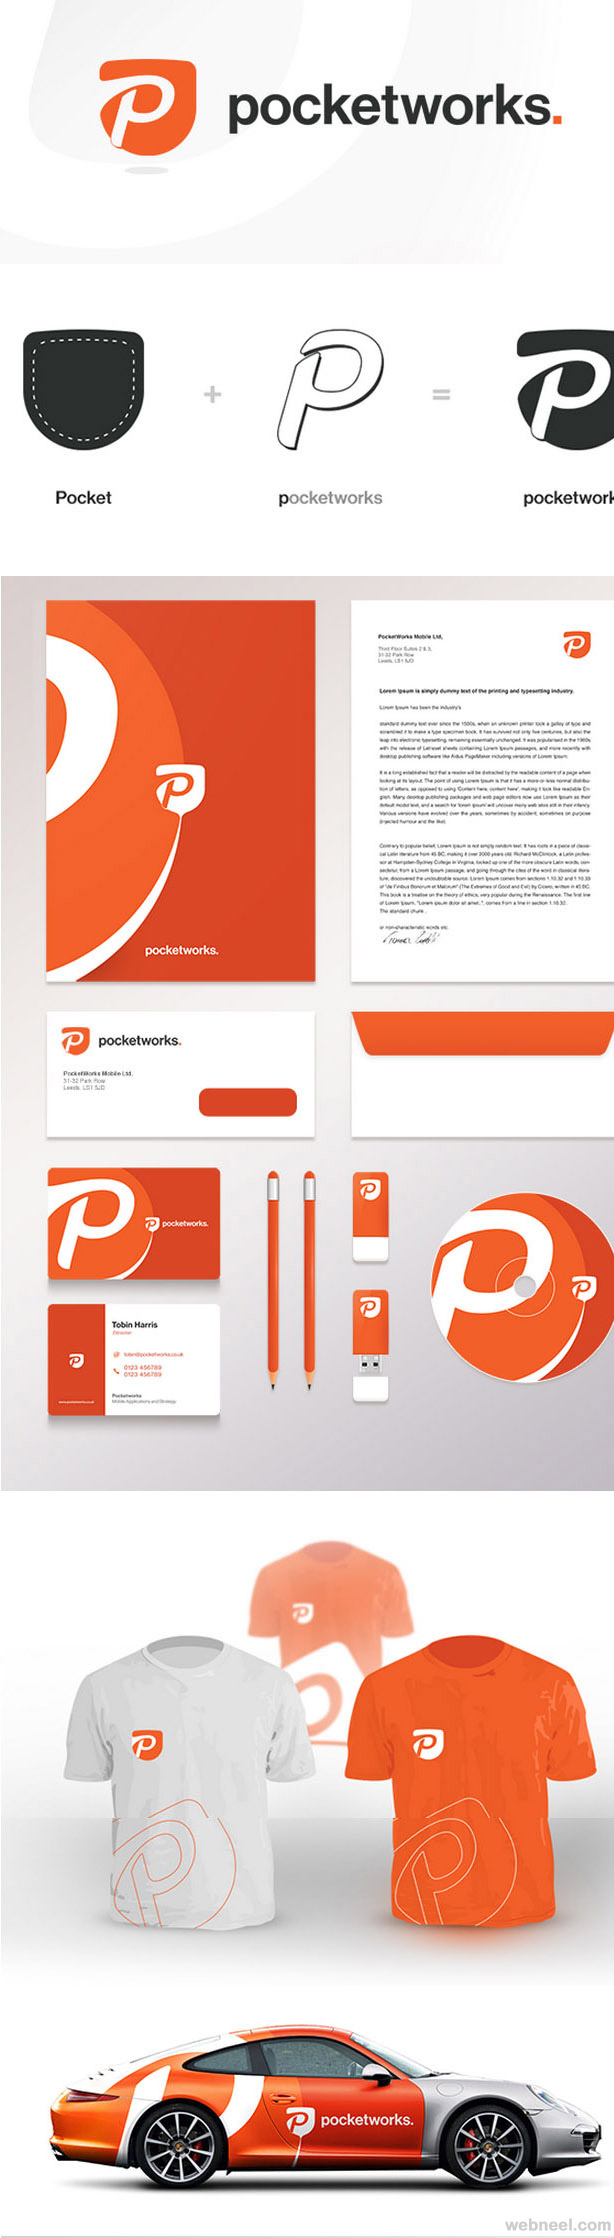 pocketworks branding identity design